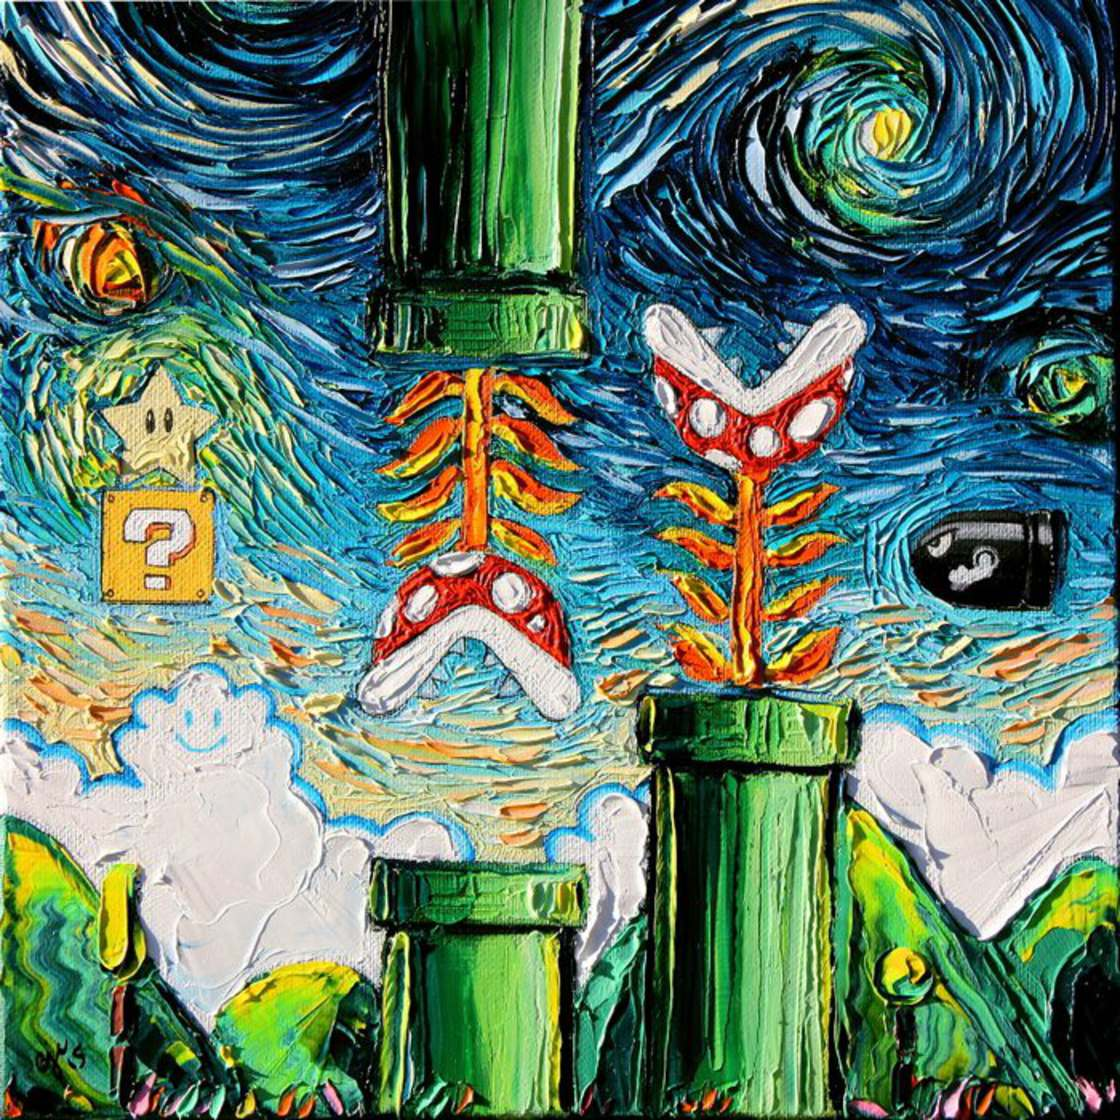 Starry Night - When Van Gogh meets Pop Culture